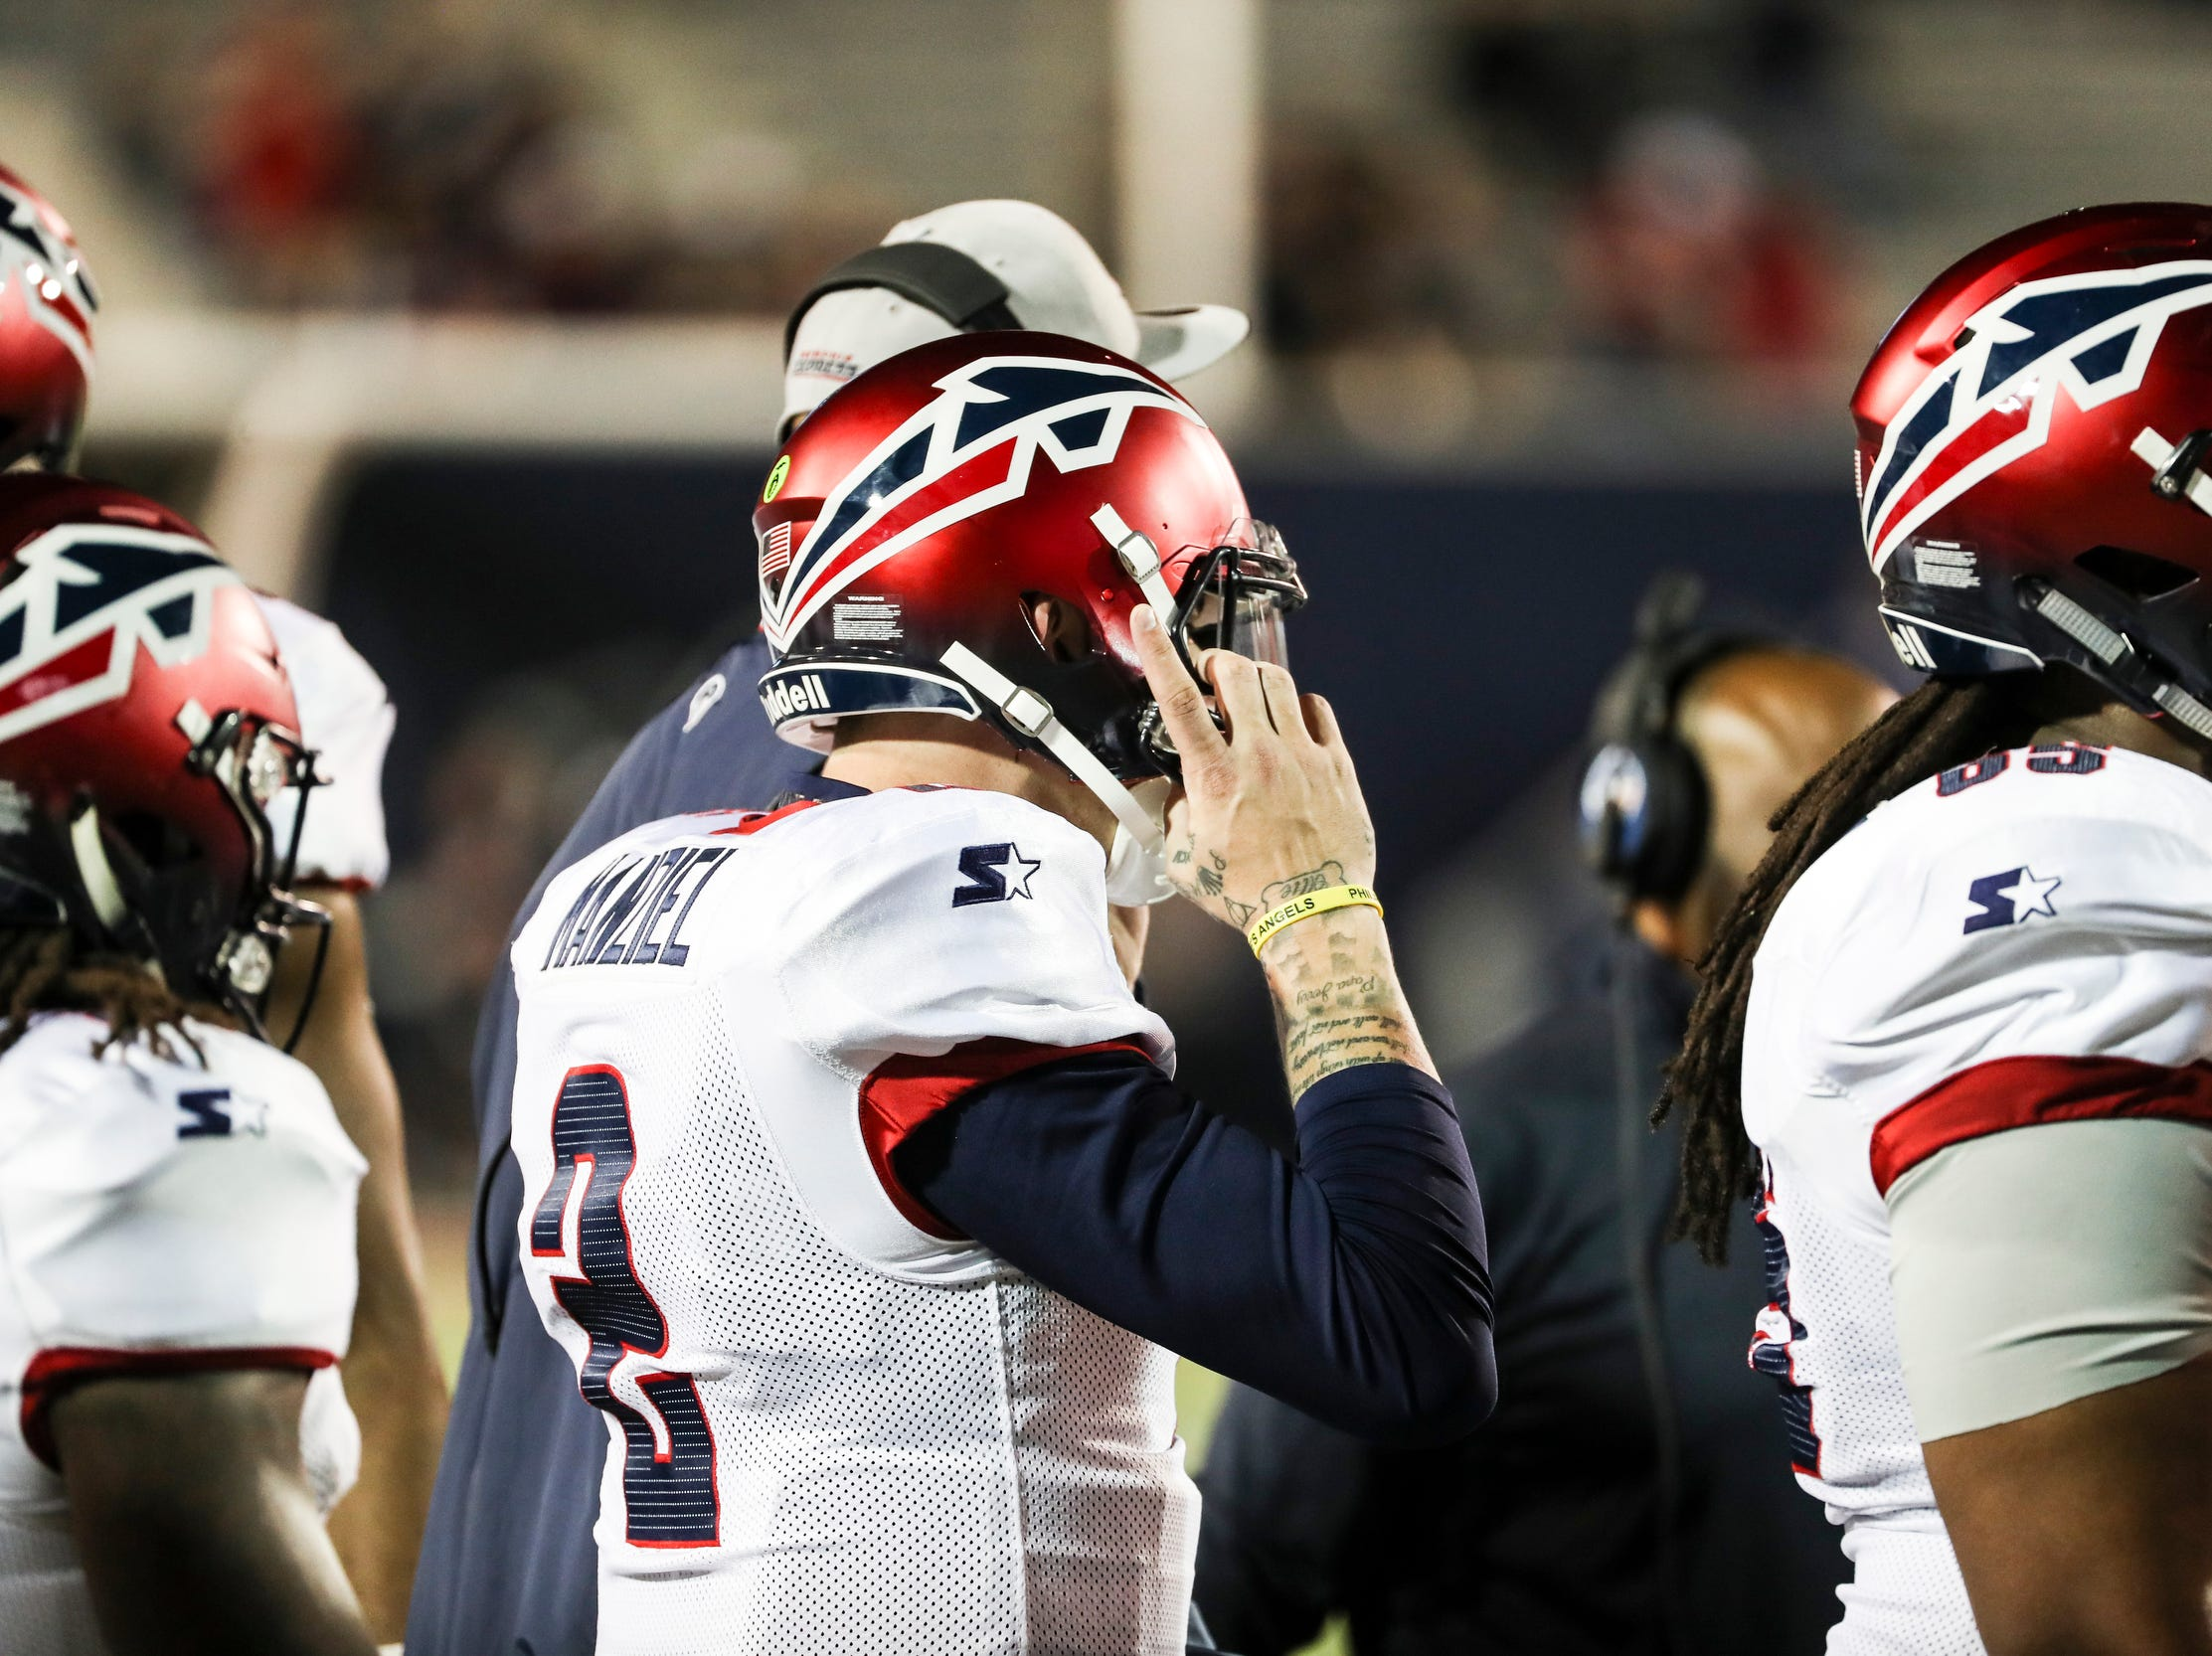 March 24, 2019 - Johnny Manziel adjusts his helmet before entering Sunday night's game against the Birmingham Iron at the Liberty Bowl Memorial Stadium.